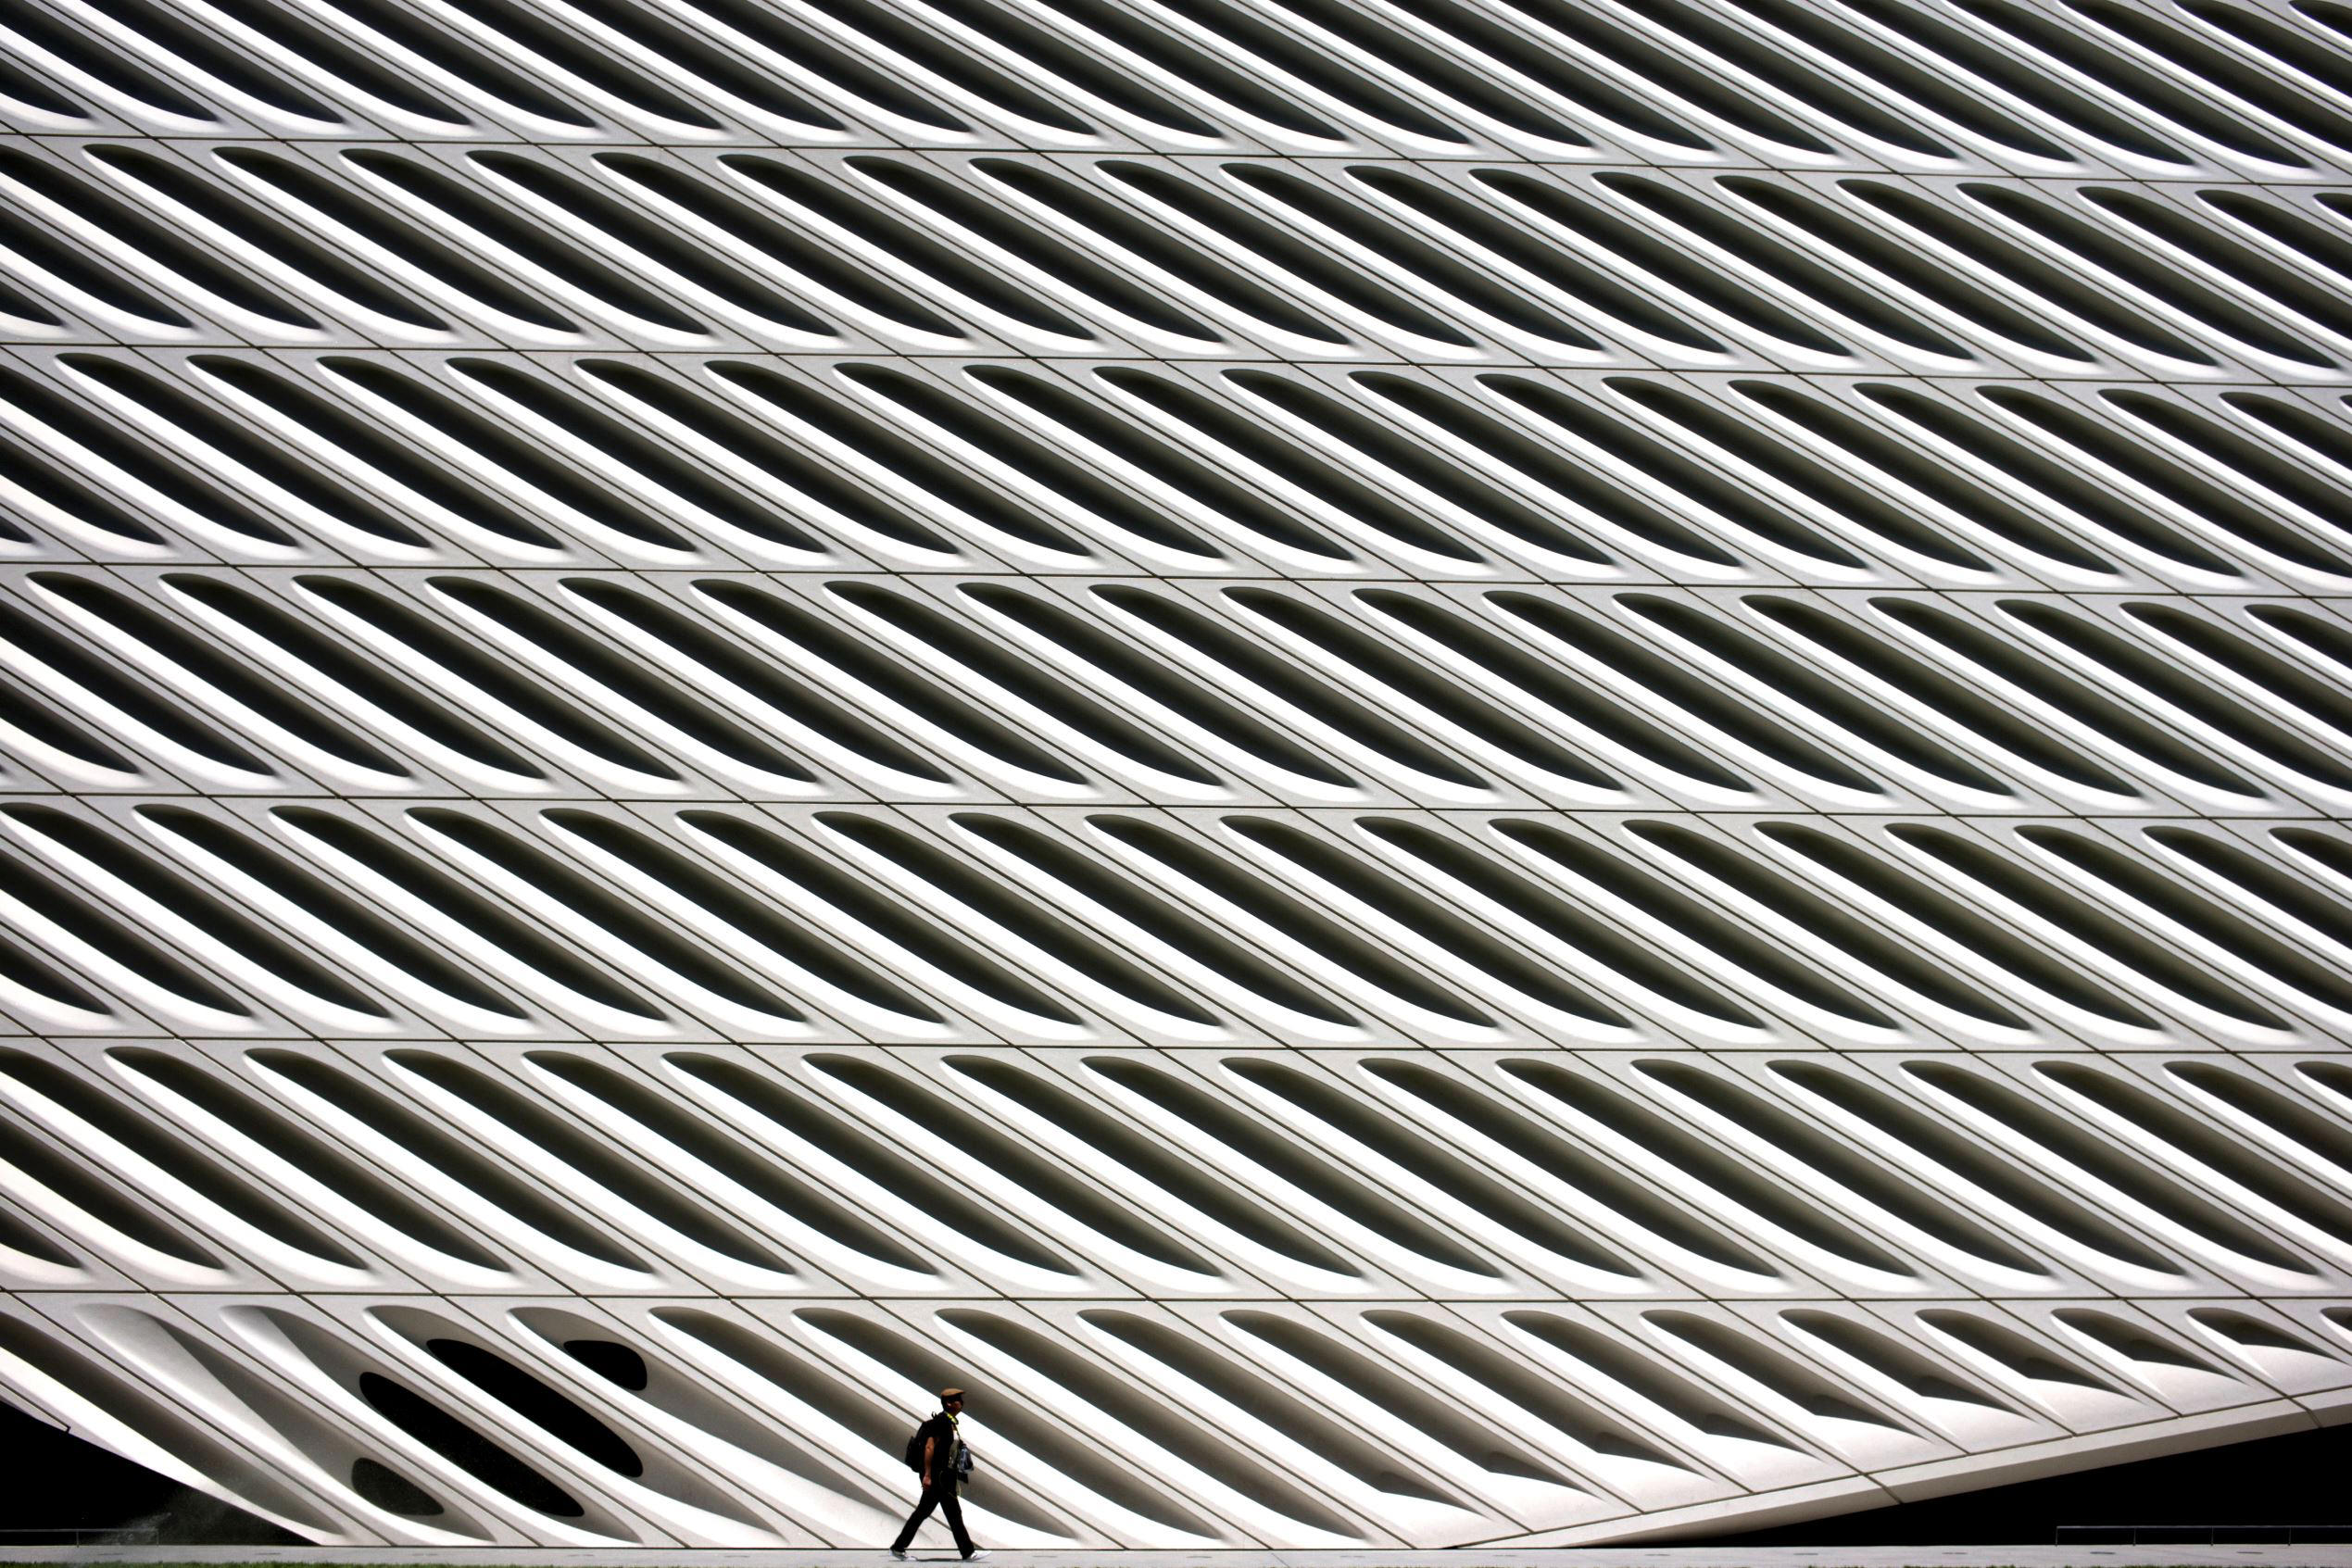 Slide 1 of 105: A man is dwarfed as he walks past The Broad museum on Monday, May 22, 2017, in downtown Los Angeles. The contemporary art museum was founded by philanthropist Eli Broad in 2015. (AP Photo/Jae C. Hong)